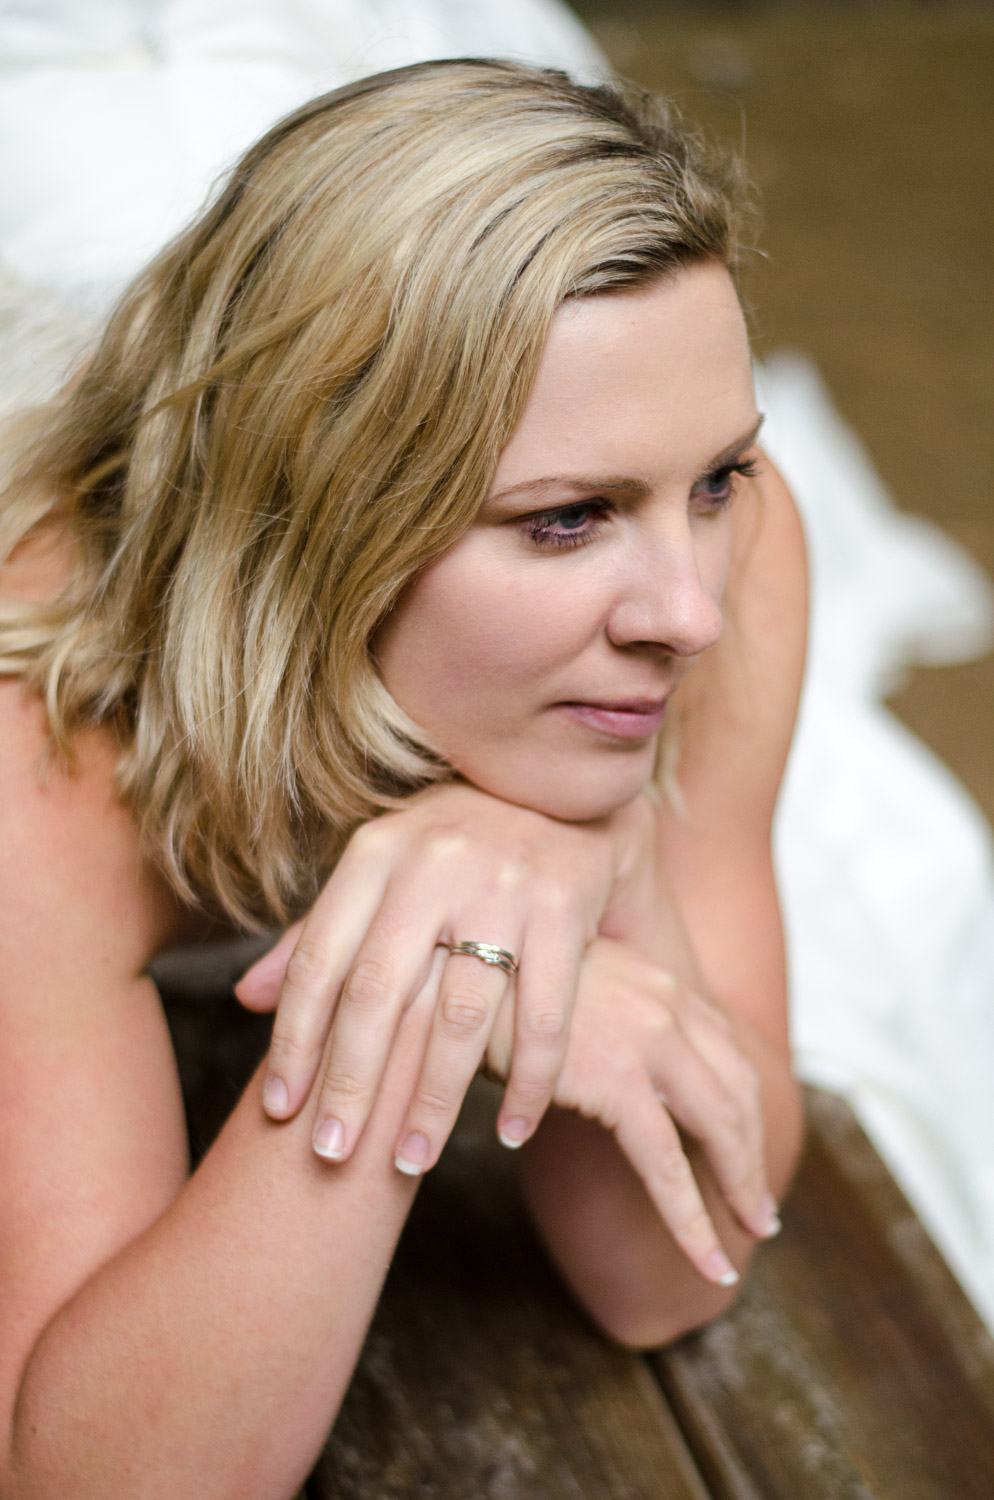 Click image to see this Bridal style shoot